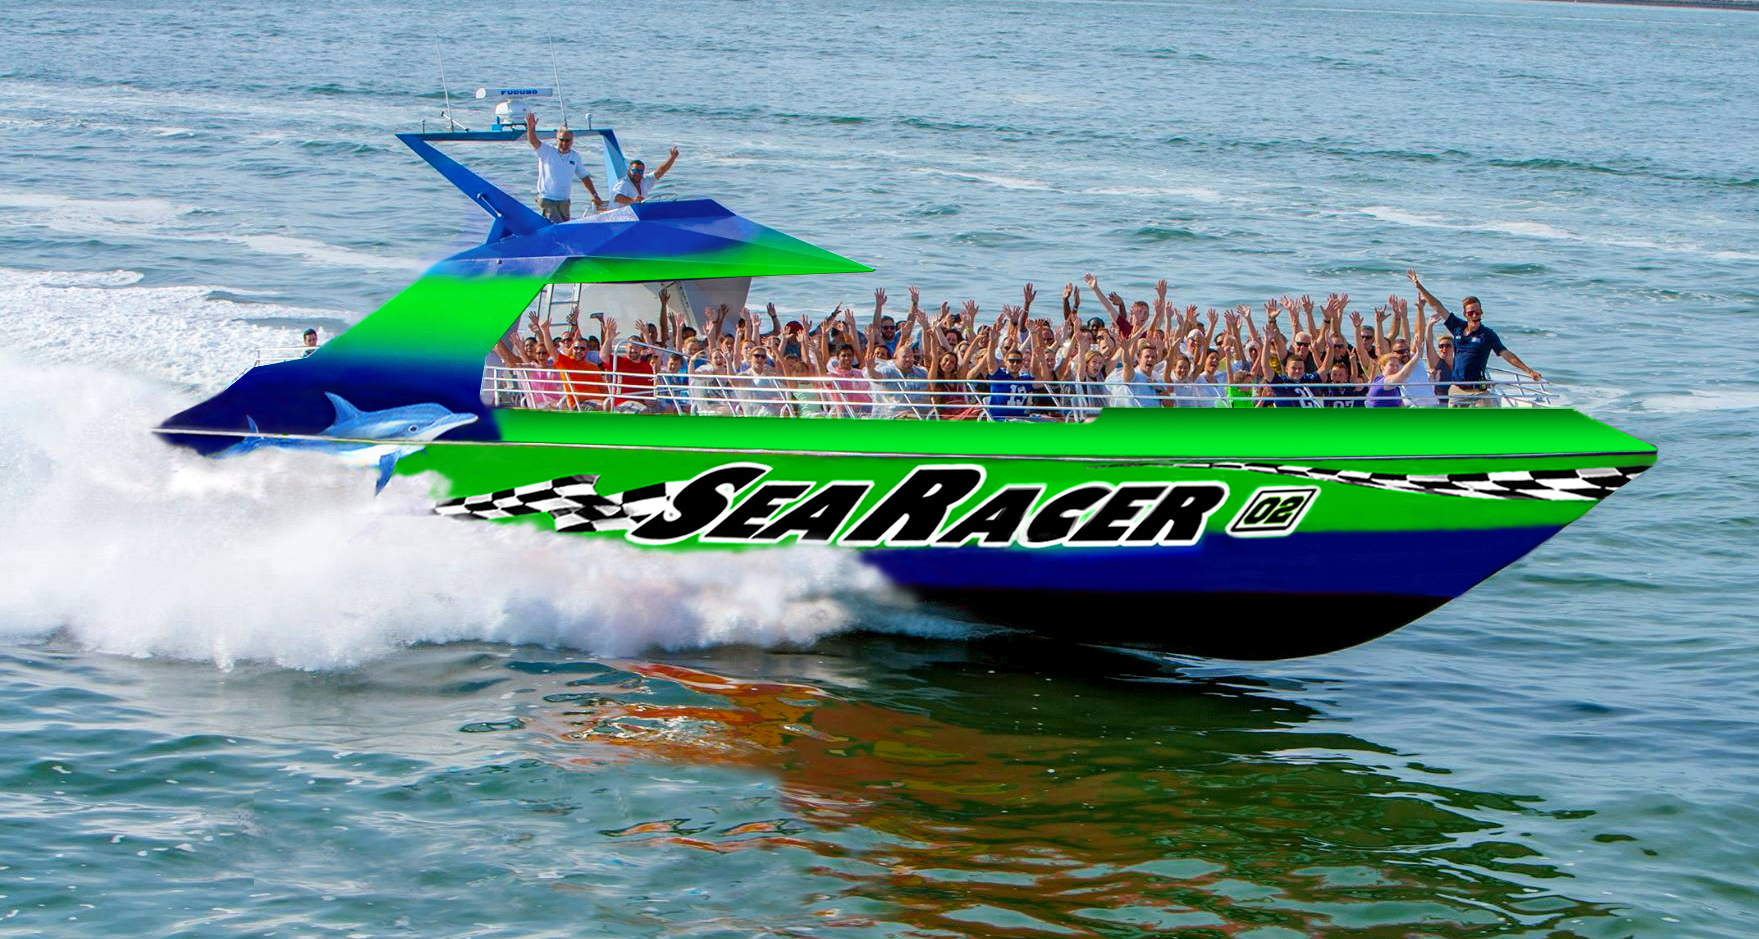 SeaRacer speed boat near our vacation home in Fort Myers Beach